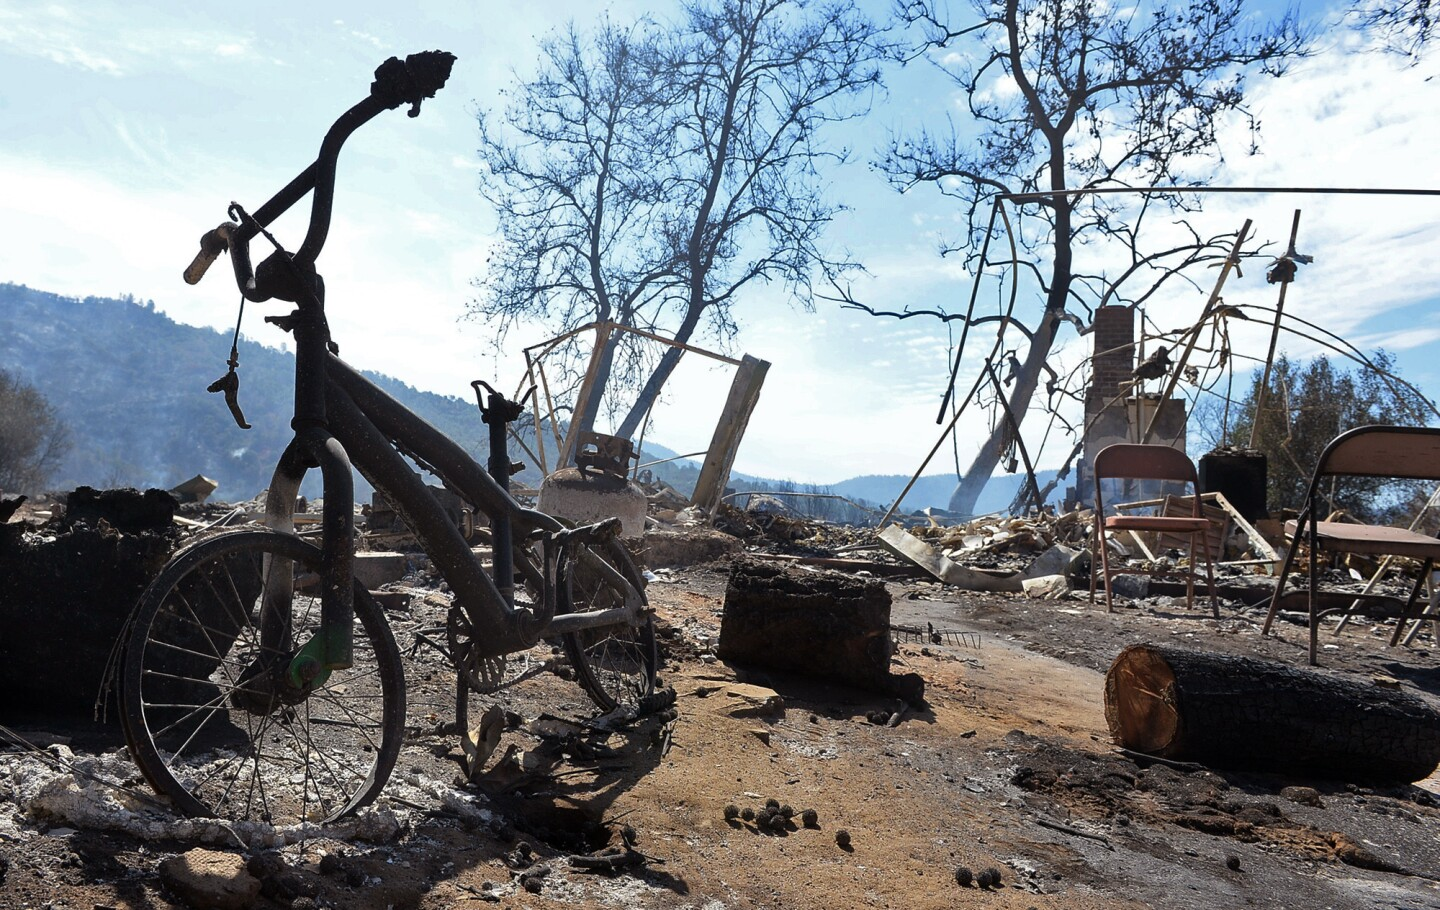 A child's bike sits among the ruins of a burned home destroyed in a wildfire along Highway 41 outside Oakhurst, Calif.